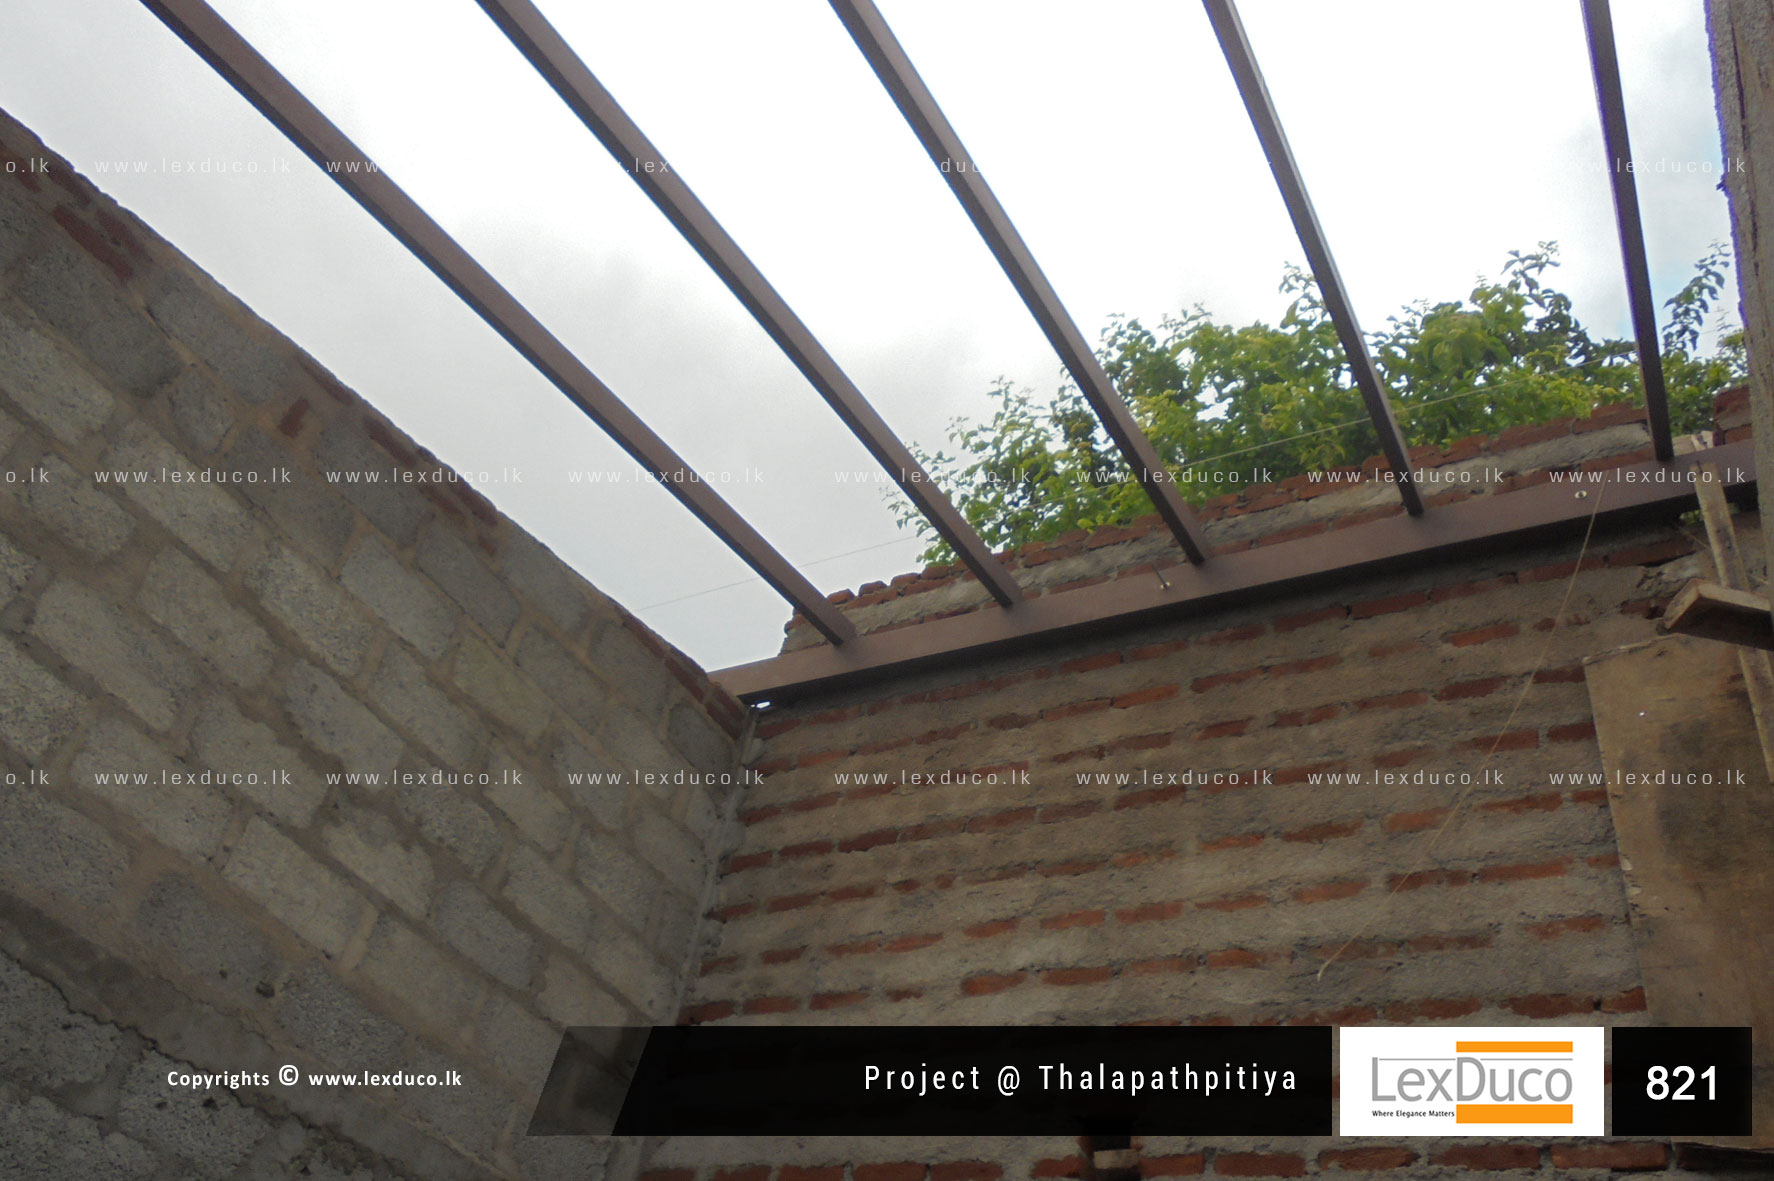 Residential Housing Project at Thalapathpitiya | Lex Duco